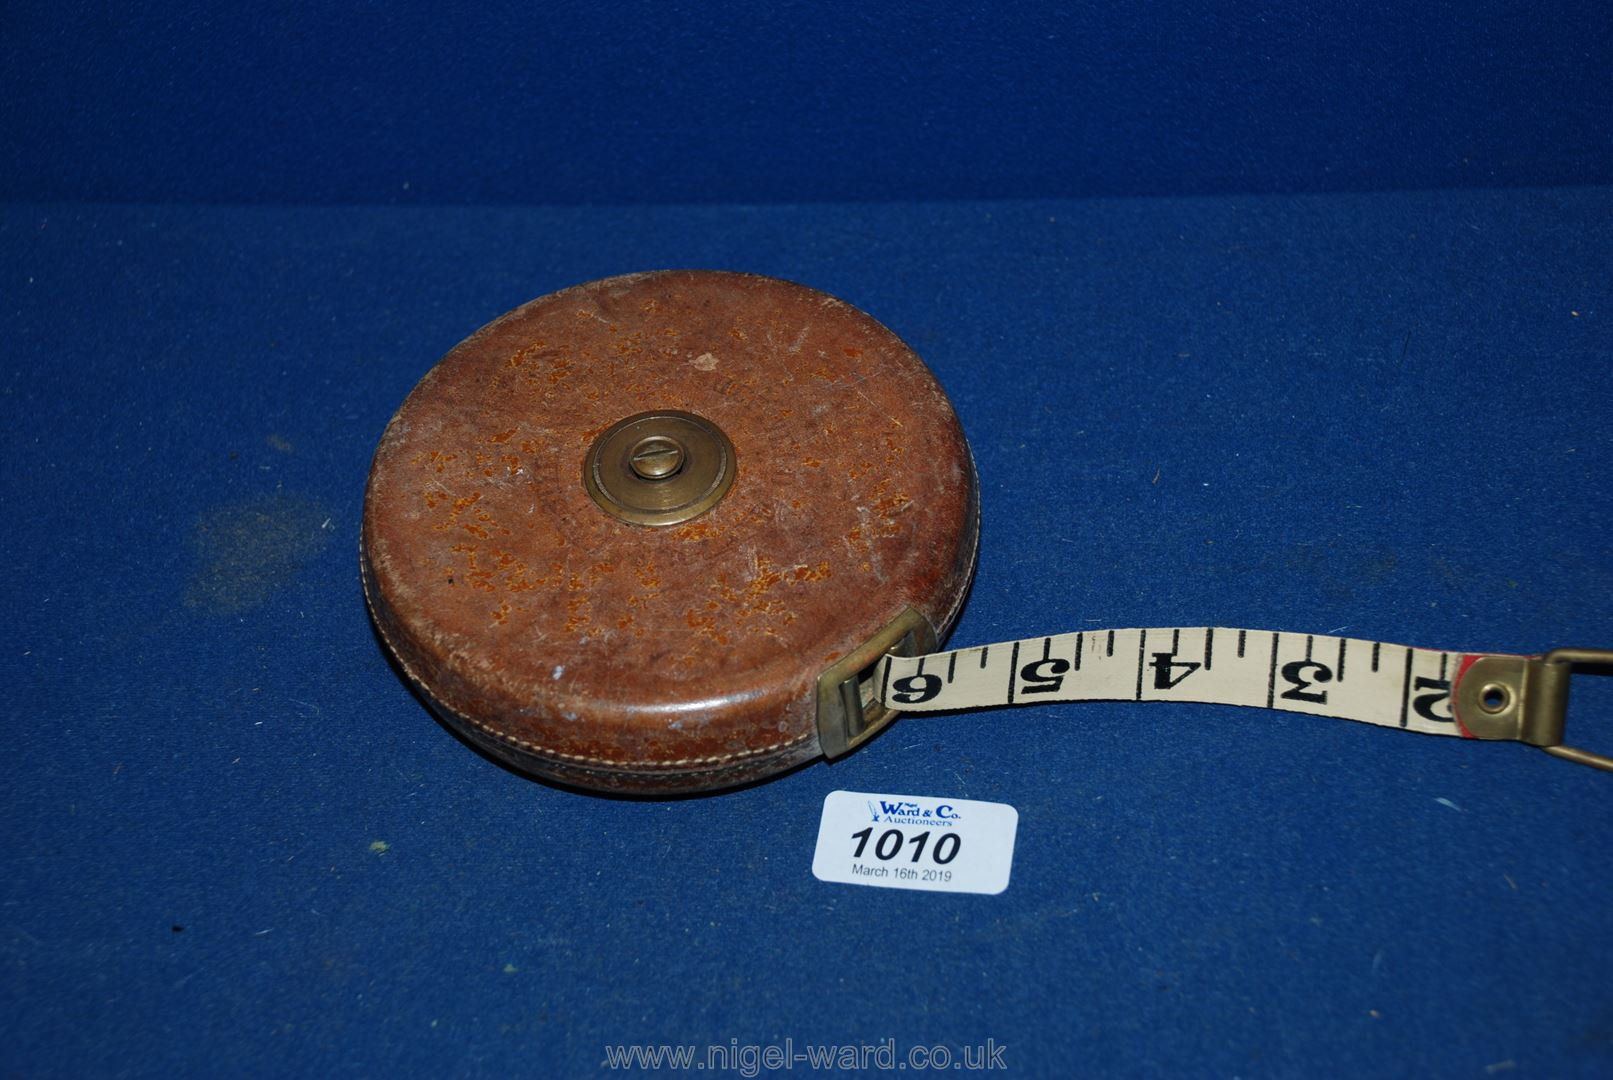 Lot 1010 - A leather Tape Measure